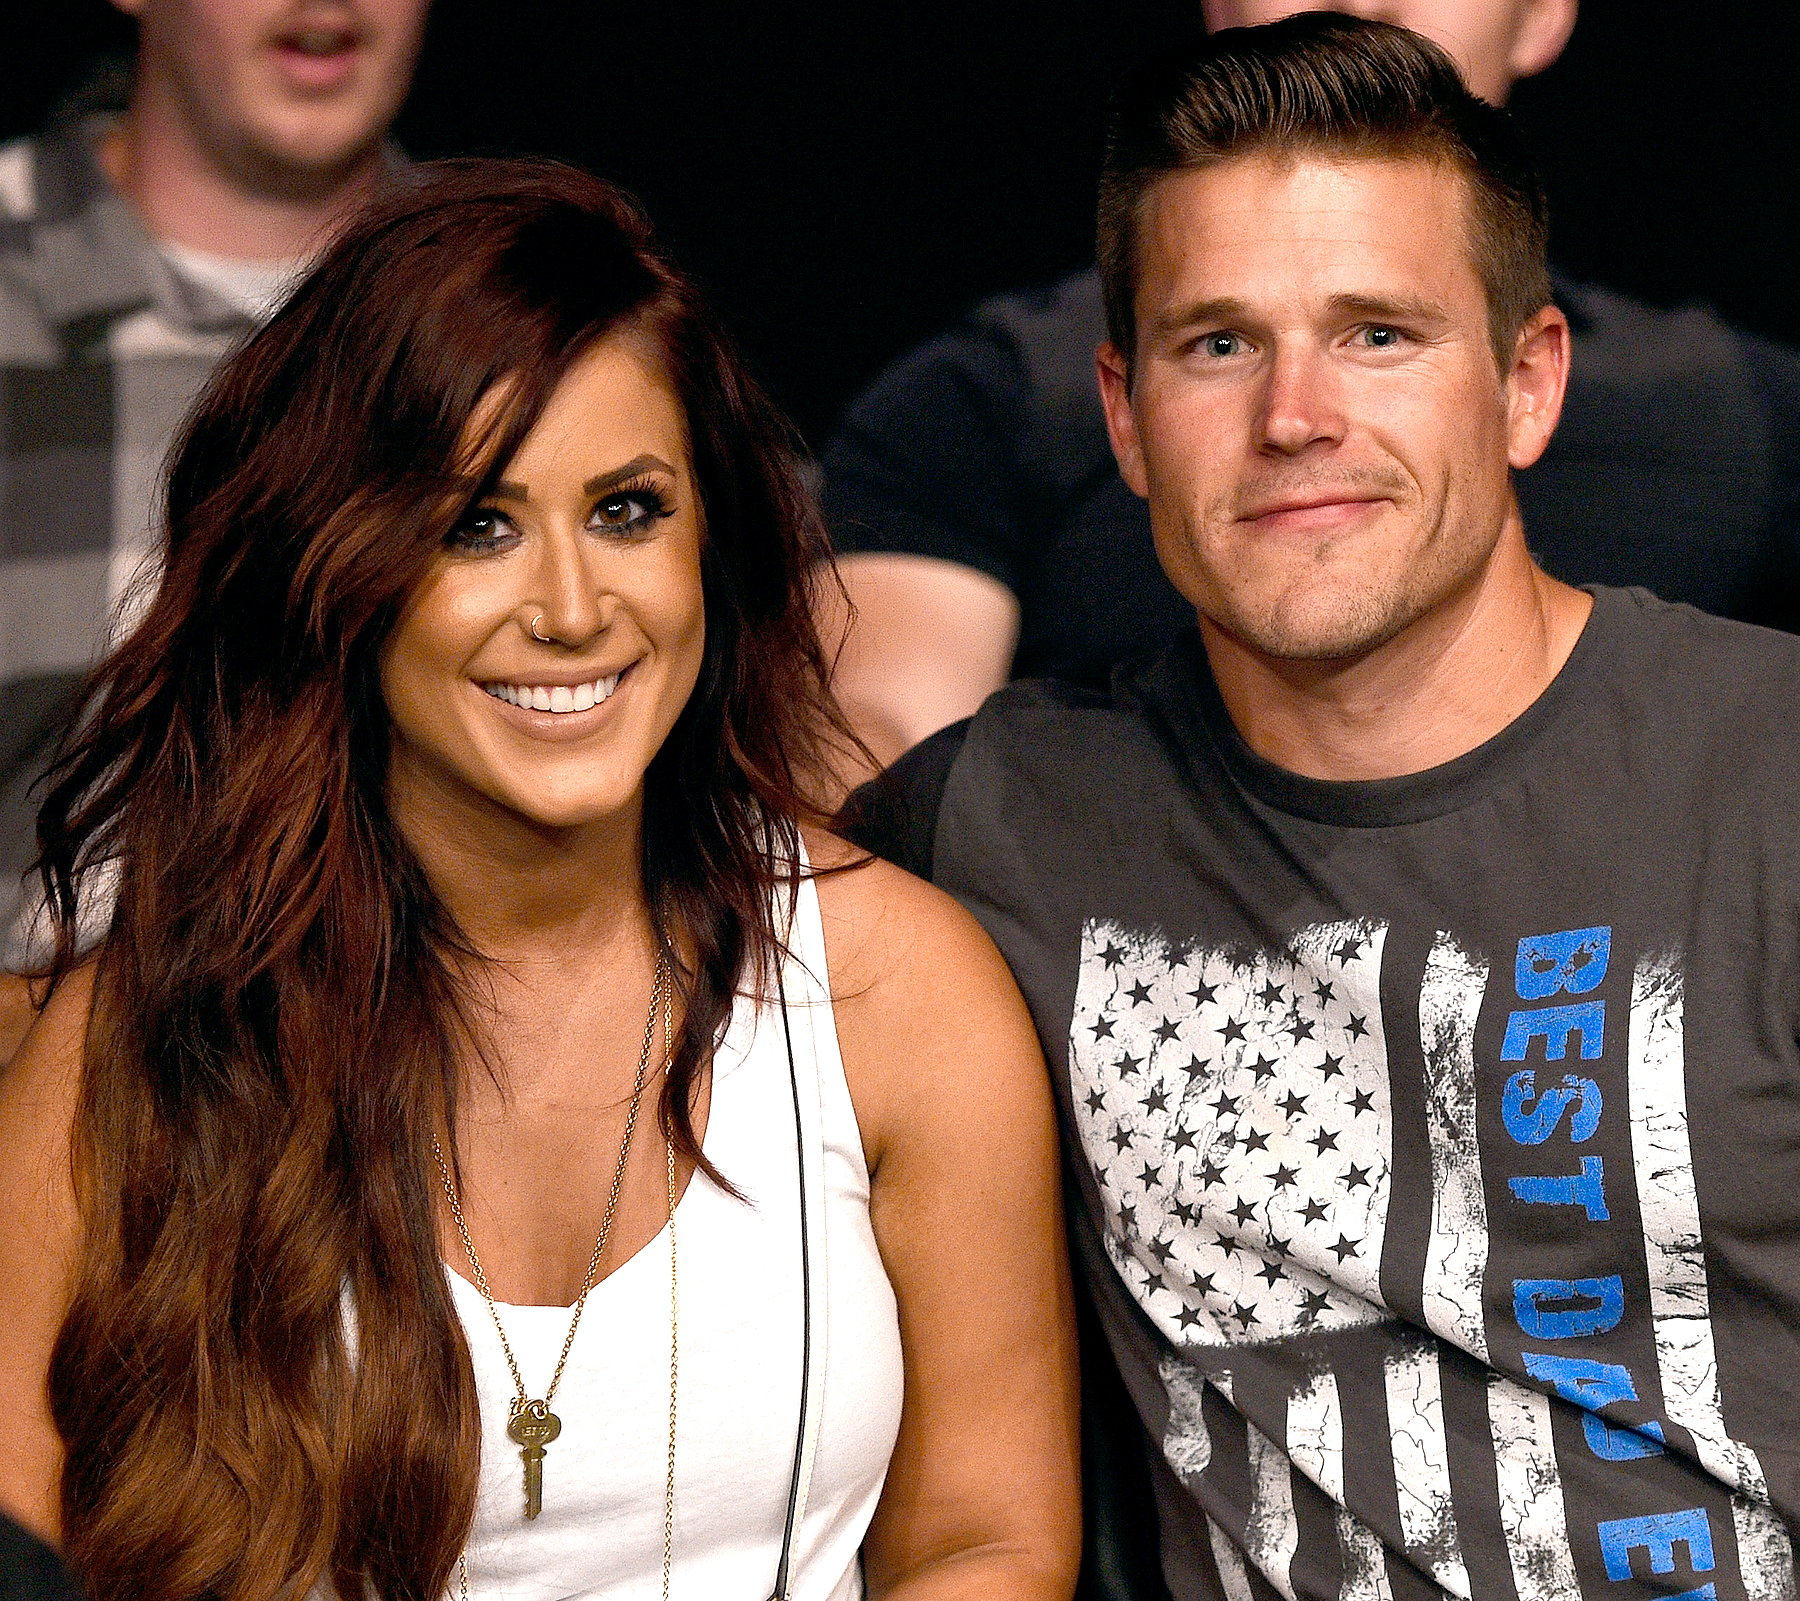 Chelsea Houska and her fiance Cole DeBoer watch the fights during the UFC Fight Night event on July 13, 2016 at Denny Sanford Premier Center in Sioux Falls, South Dakota.